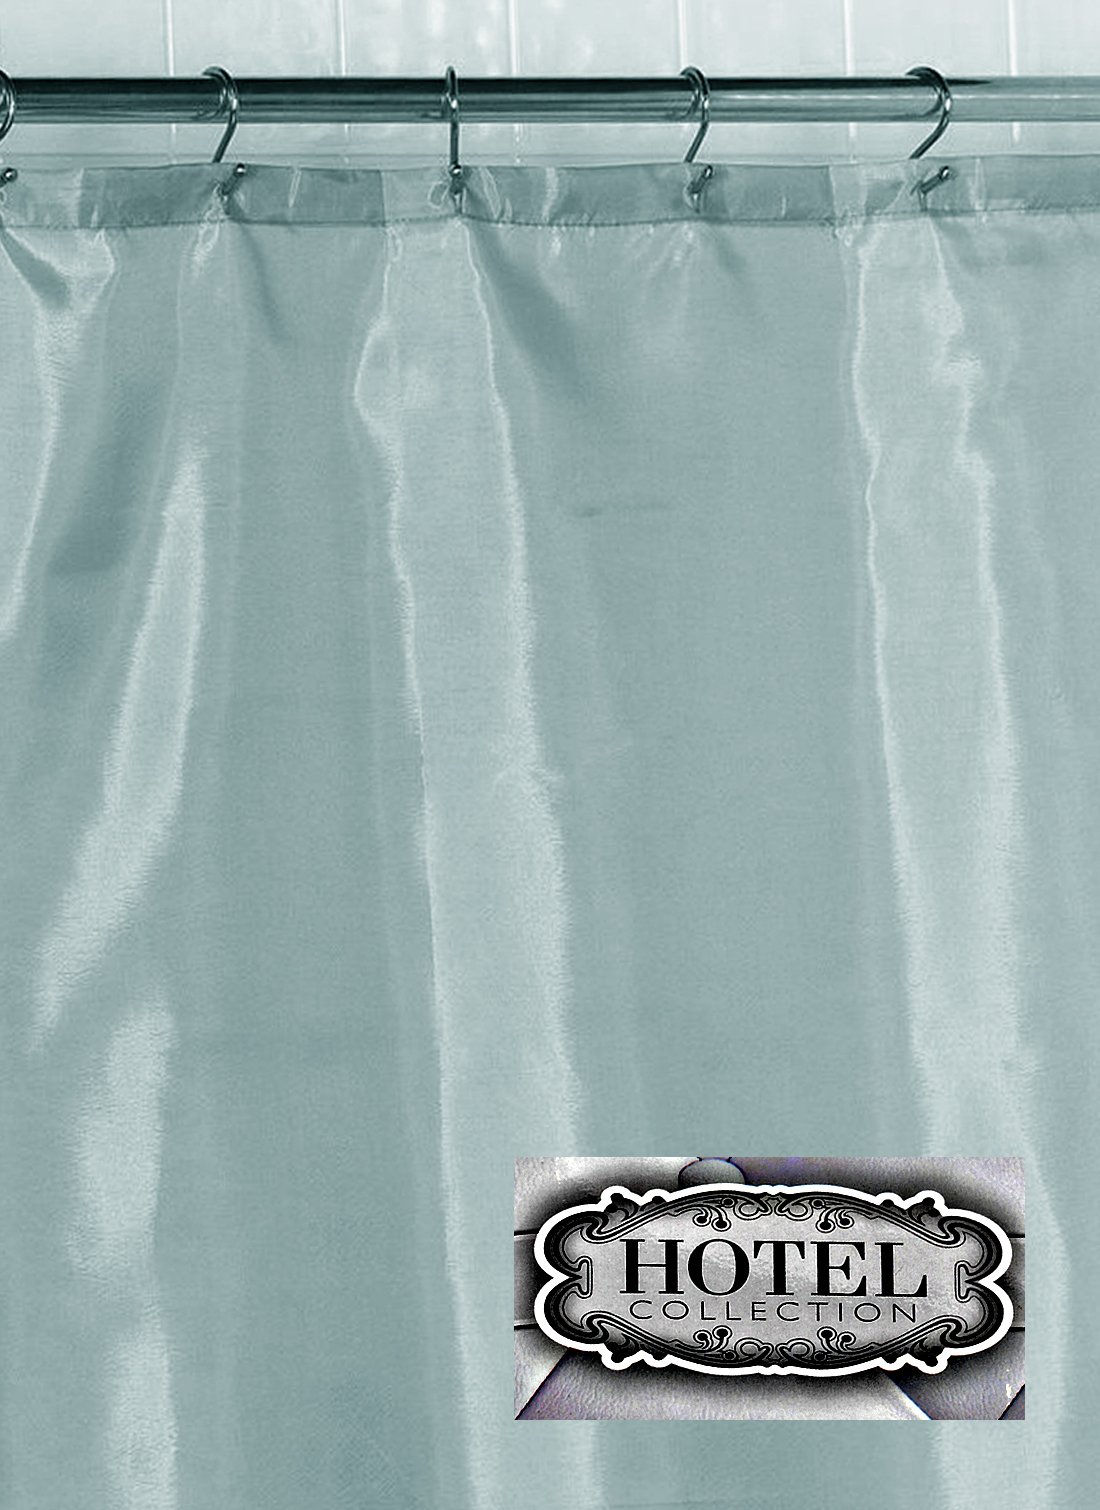 Hotel Fabric Shower Curtain Liner 70'' wide x 72'' long, Spa Blue